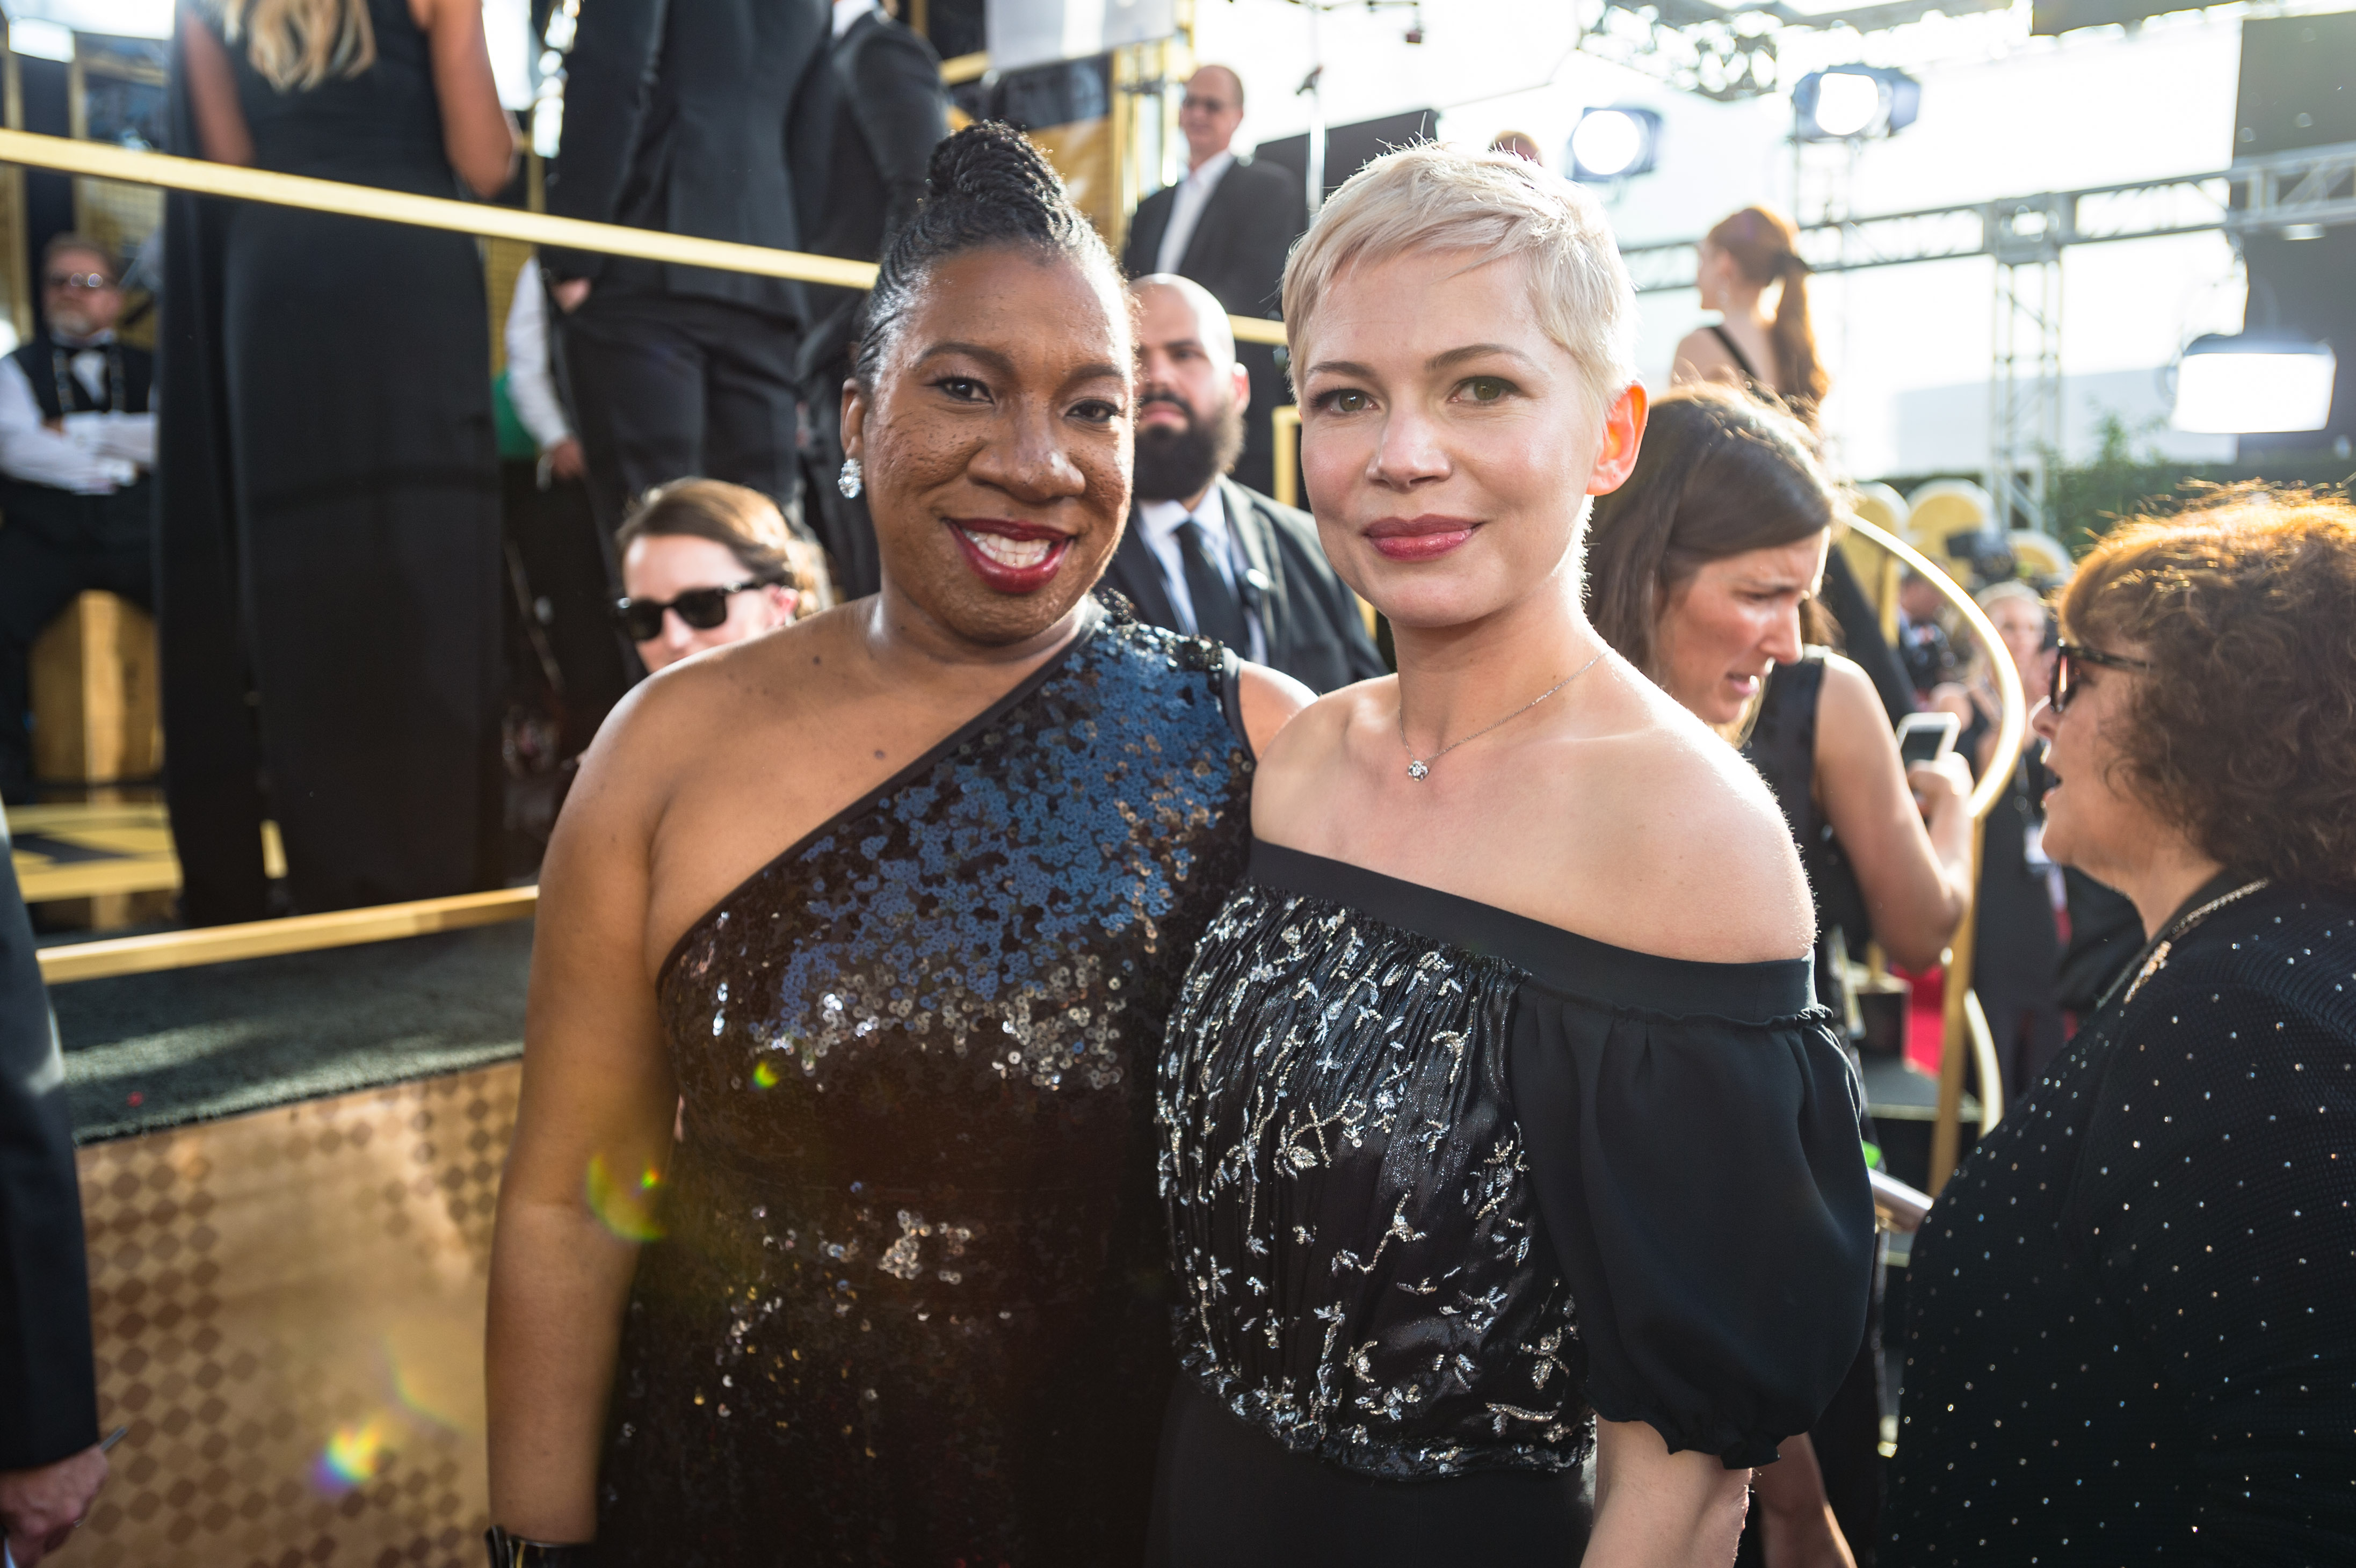 "ominated for BEST PERFORMANCE BY AN ACTRESS IN A MOTION PICTURE – DRAMA for her role in ""All the Money in the World,"" actress Michelle Williams poses with Tarana Burke at the 75th Annual Golden Globe Awards at the Beverly Hilton in Beverly Hills, CA on Sunday, January 7, 2018."